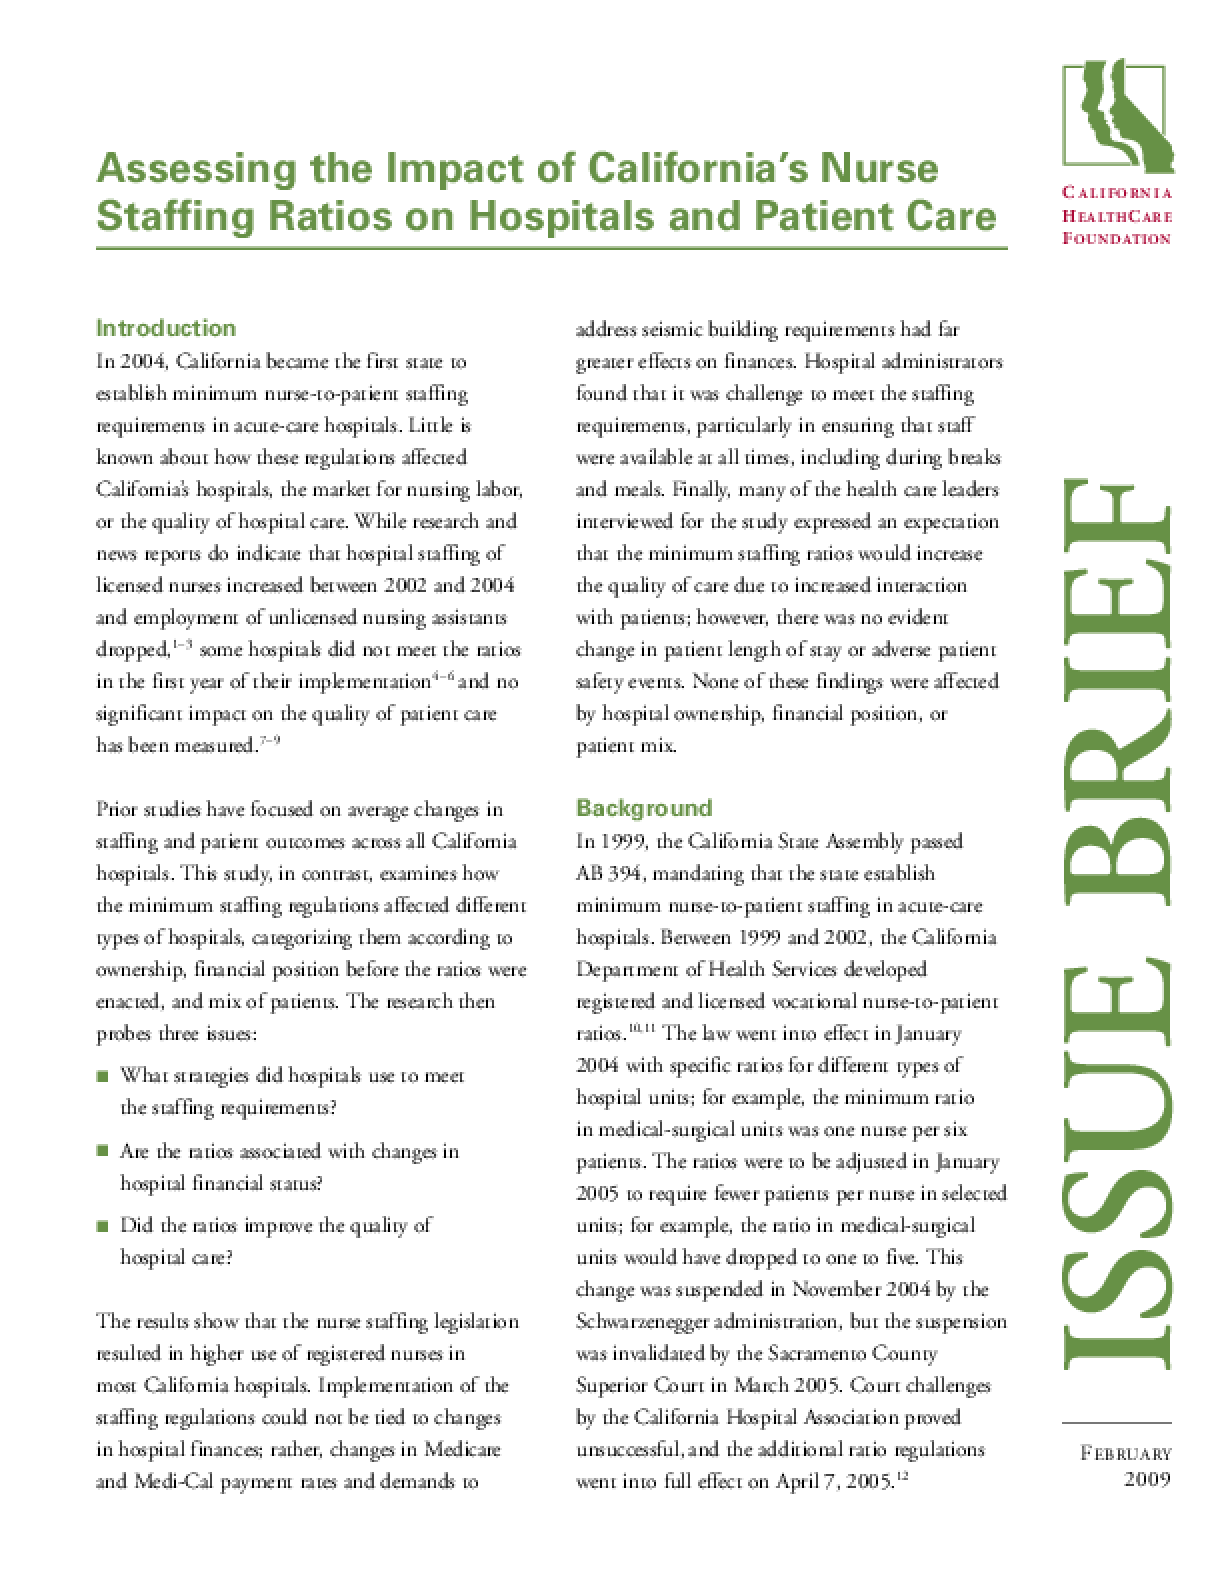 Assessing the Impact of California's Nurse Staffing Ratios on Hospitals and Patient Care